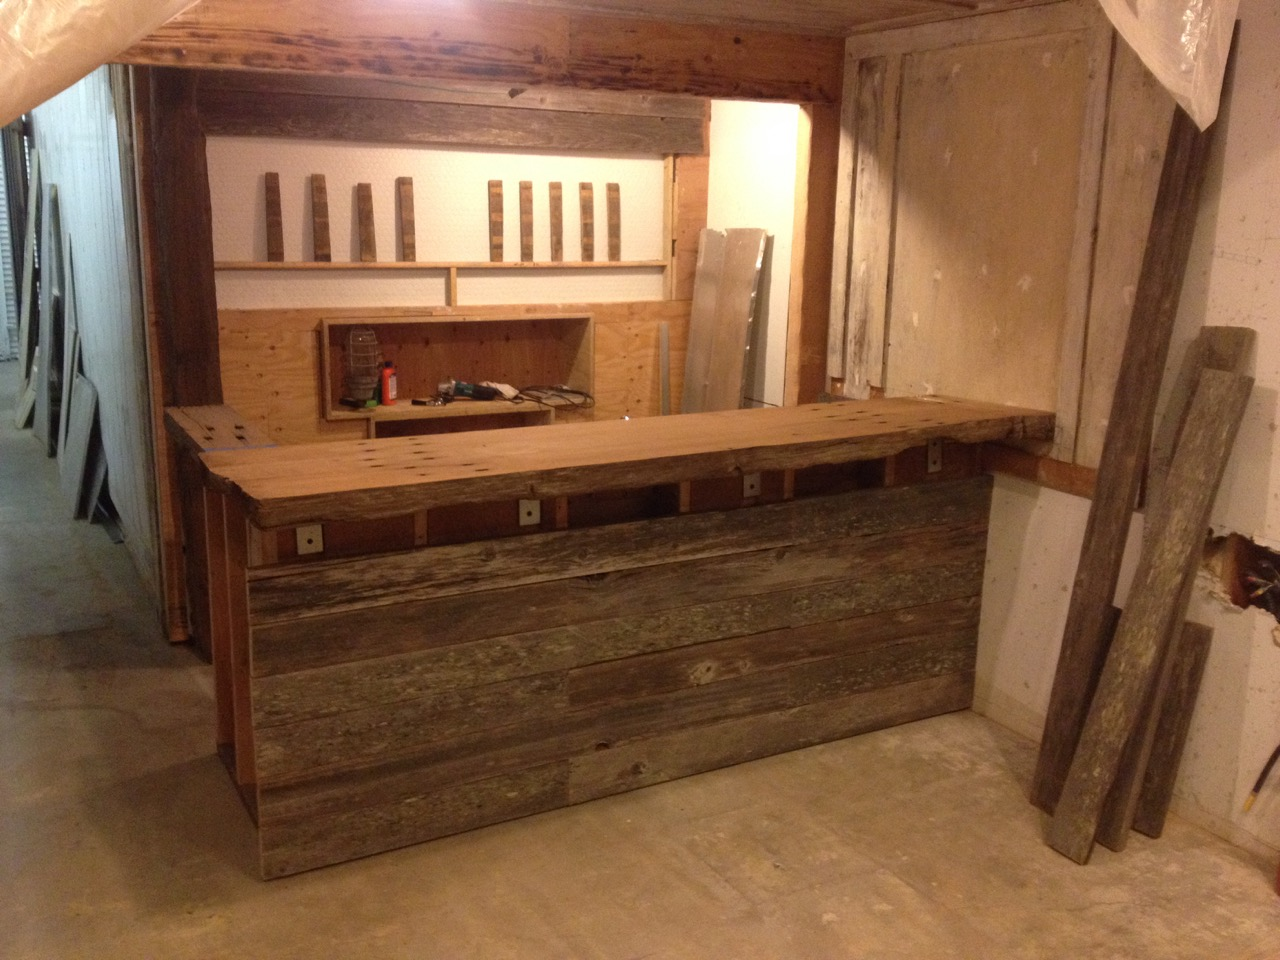 Staging: The taps are mocked up from old oak barrel staves, the face of the bar is salvaged pasture fencing.